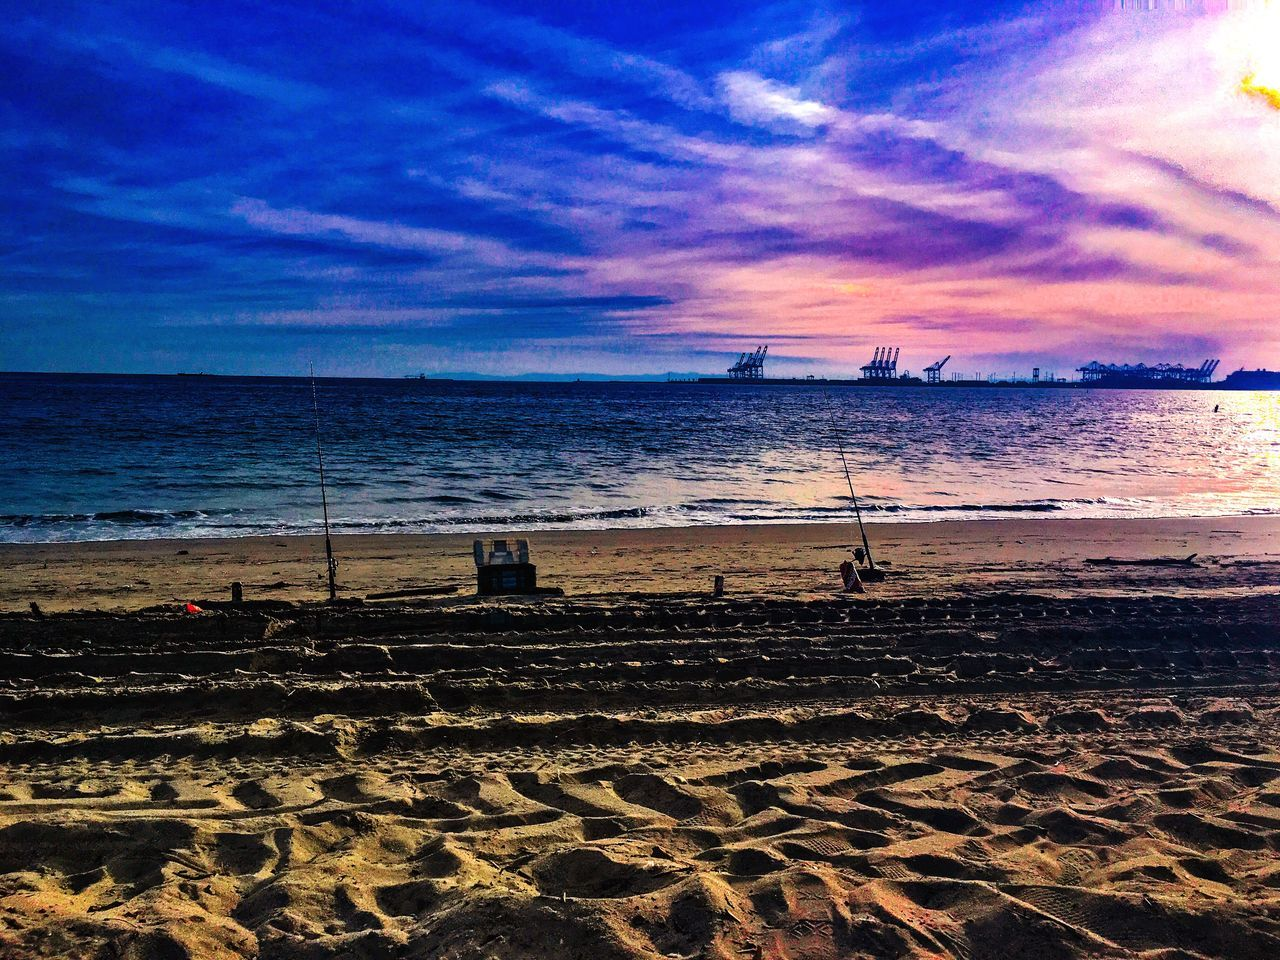 beach, sea, sand, horizon over water, water, shore, nature, sky, beauty in nature, sunset, scenics, tranquil scene, tranquility, outdoors, cloud - sky, vacations, no people, travel destinations, day, beach volleyball